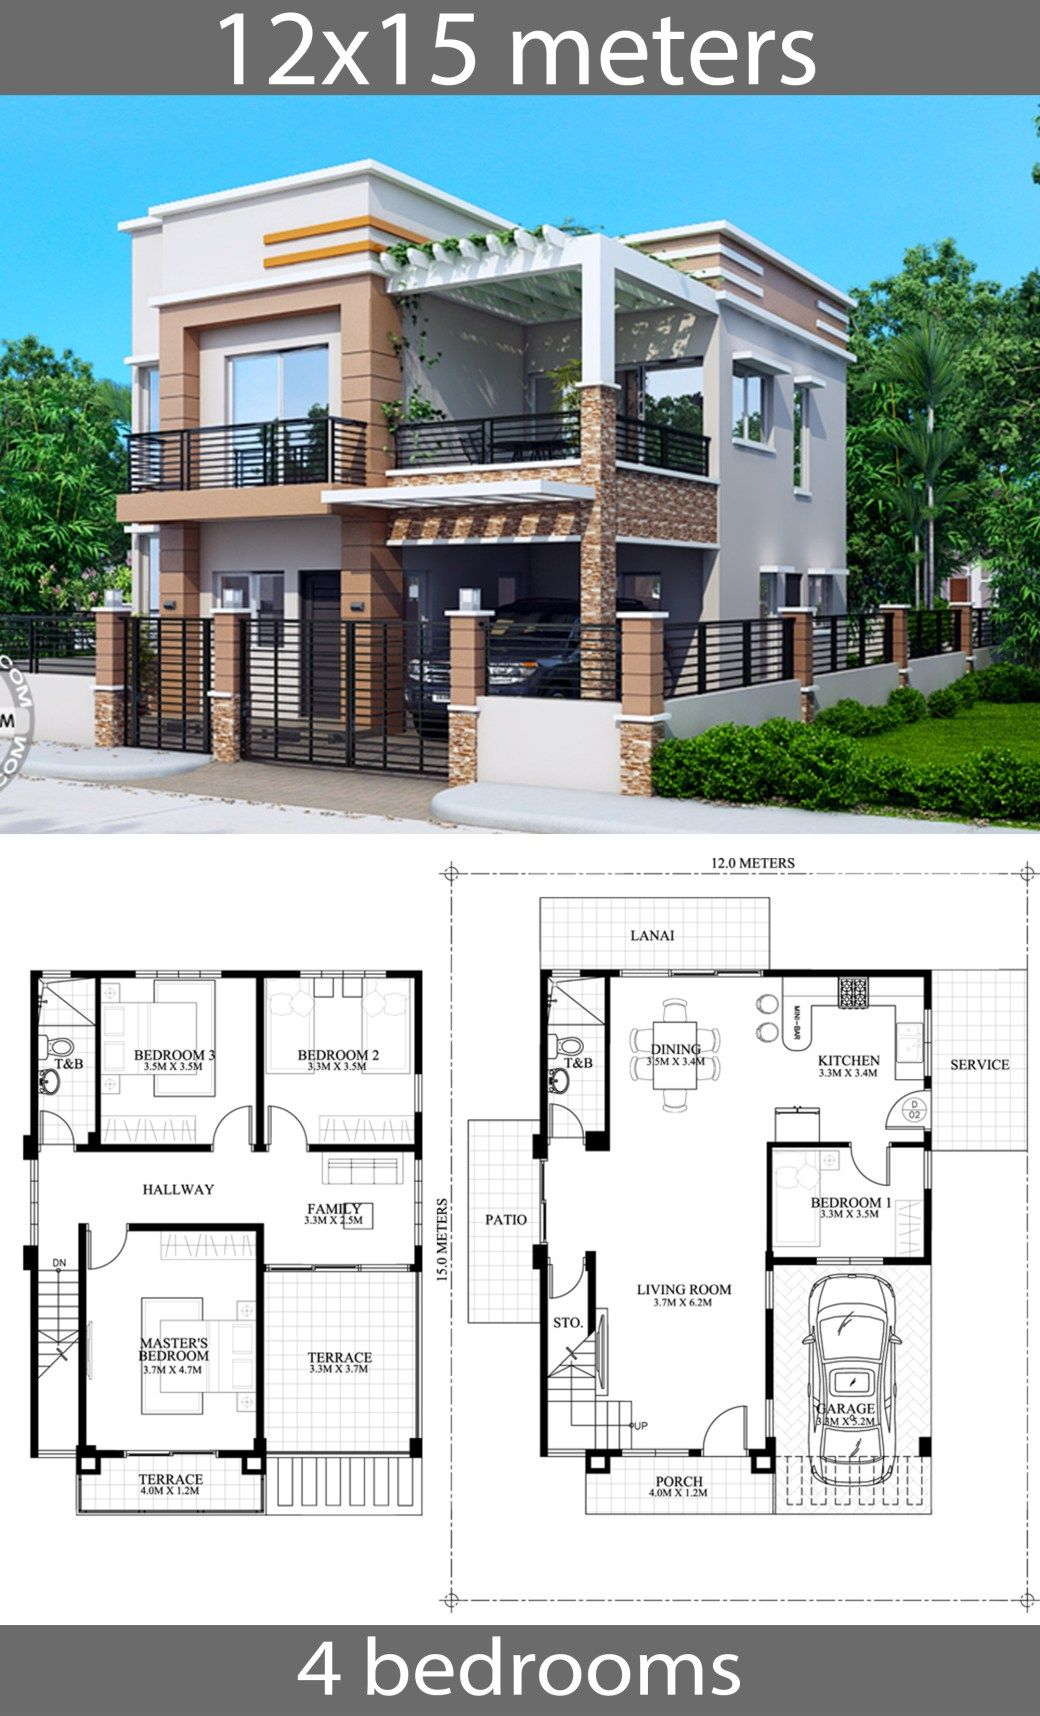 House Plans 12x15m With 4 Bedrooms House Idea In 2020 Family House Plans Model House Plan Architectural House Plans